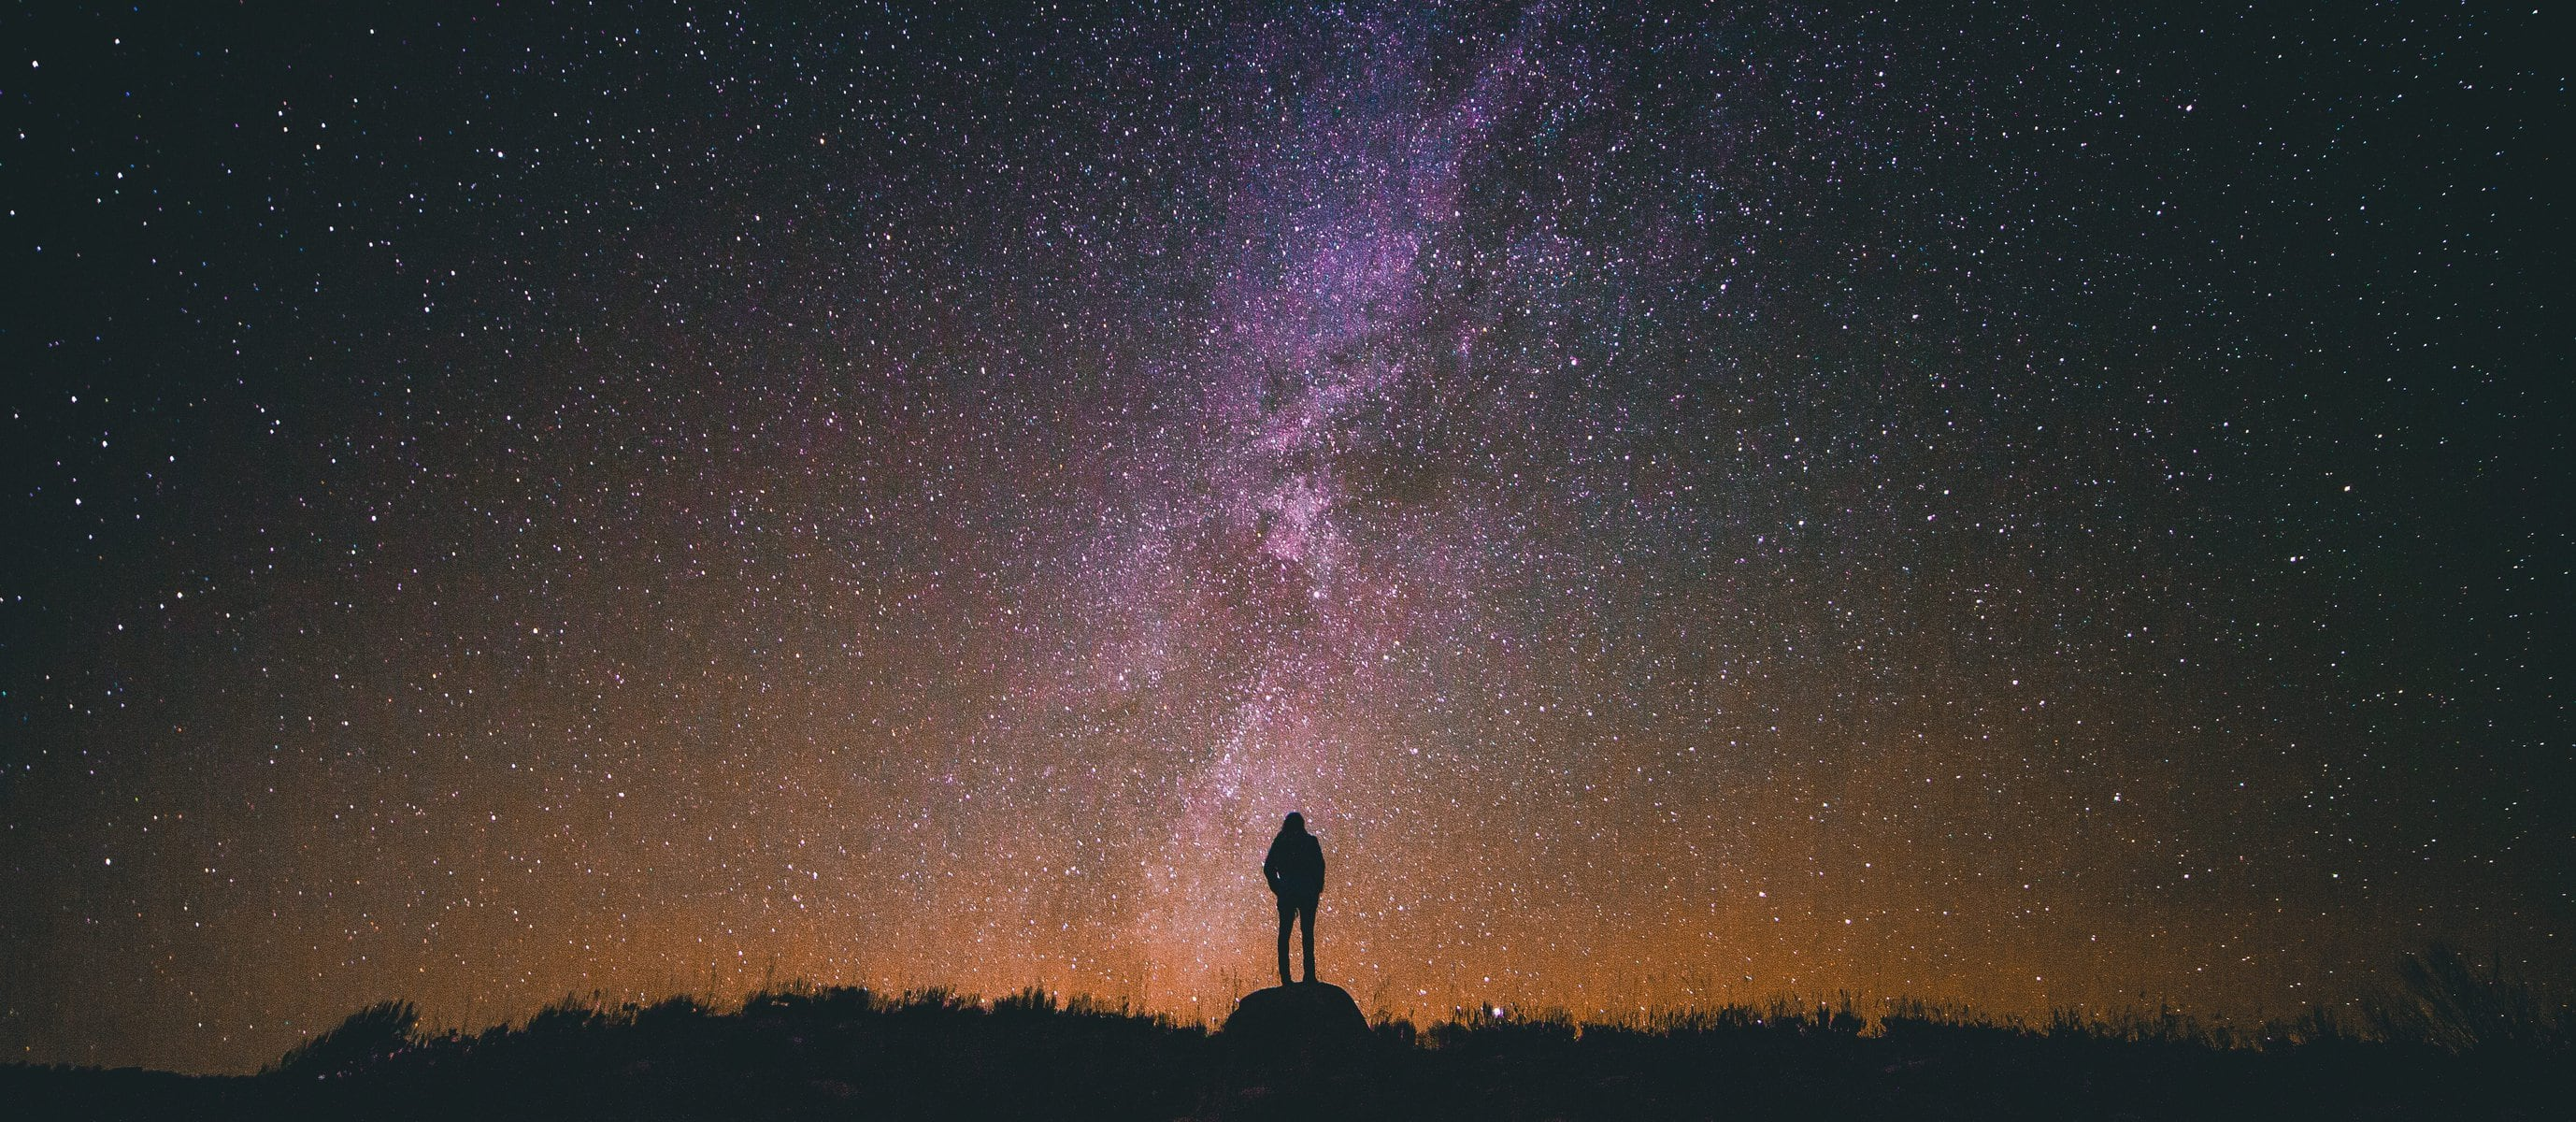 Silhouetted person staring at a starry night sky